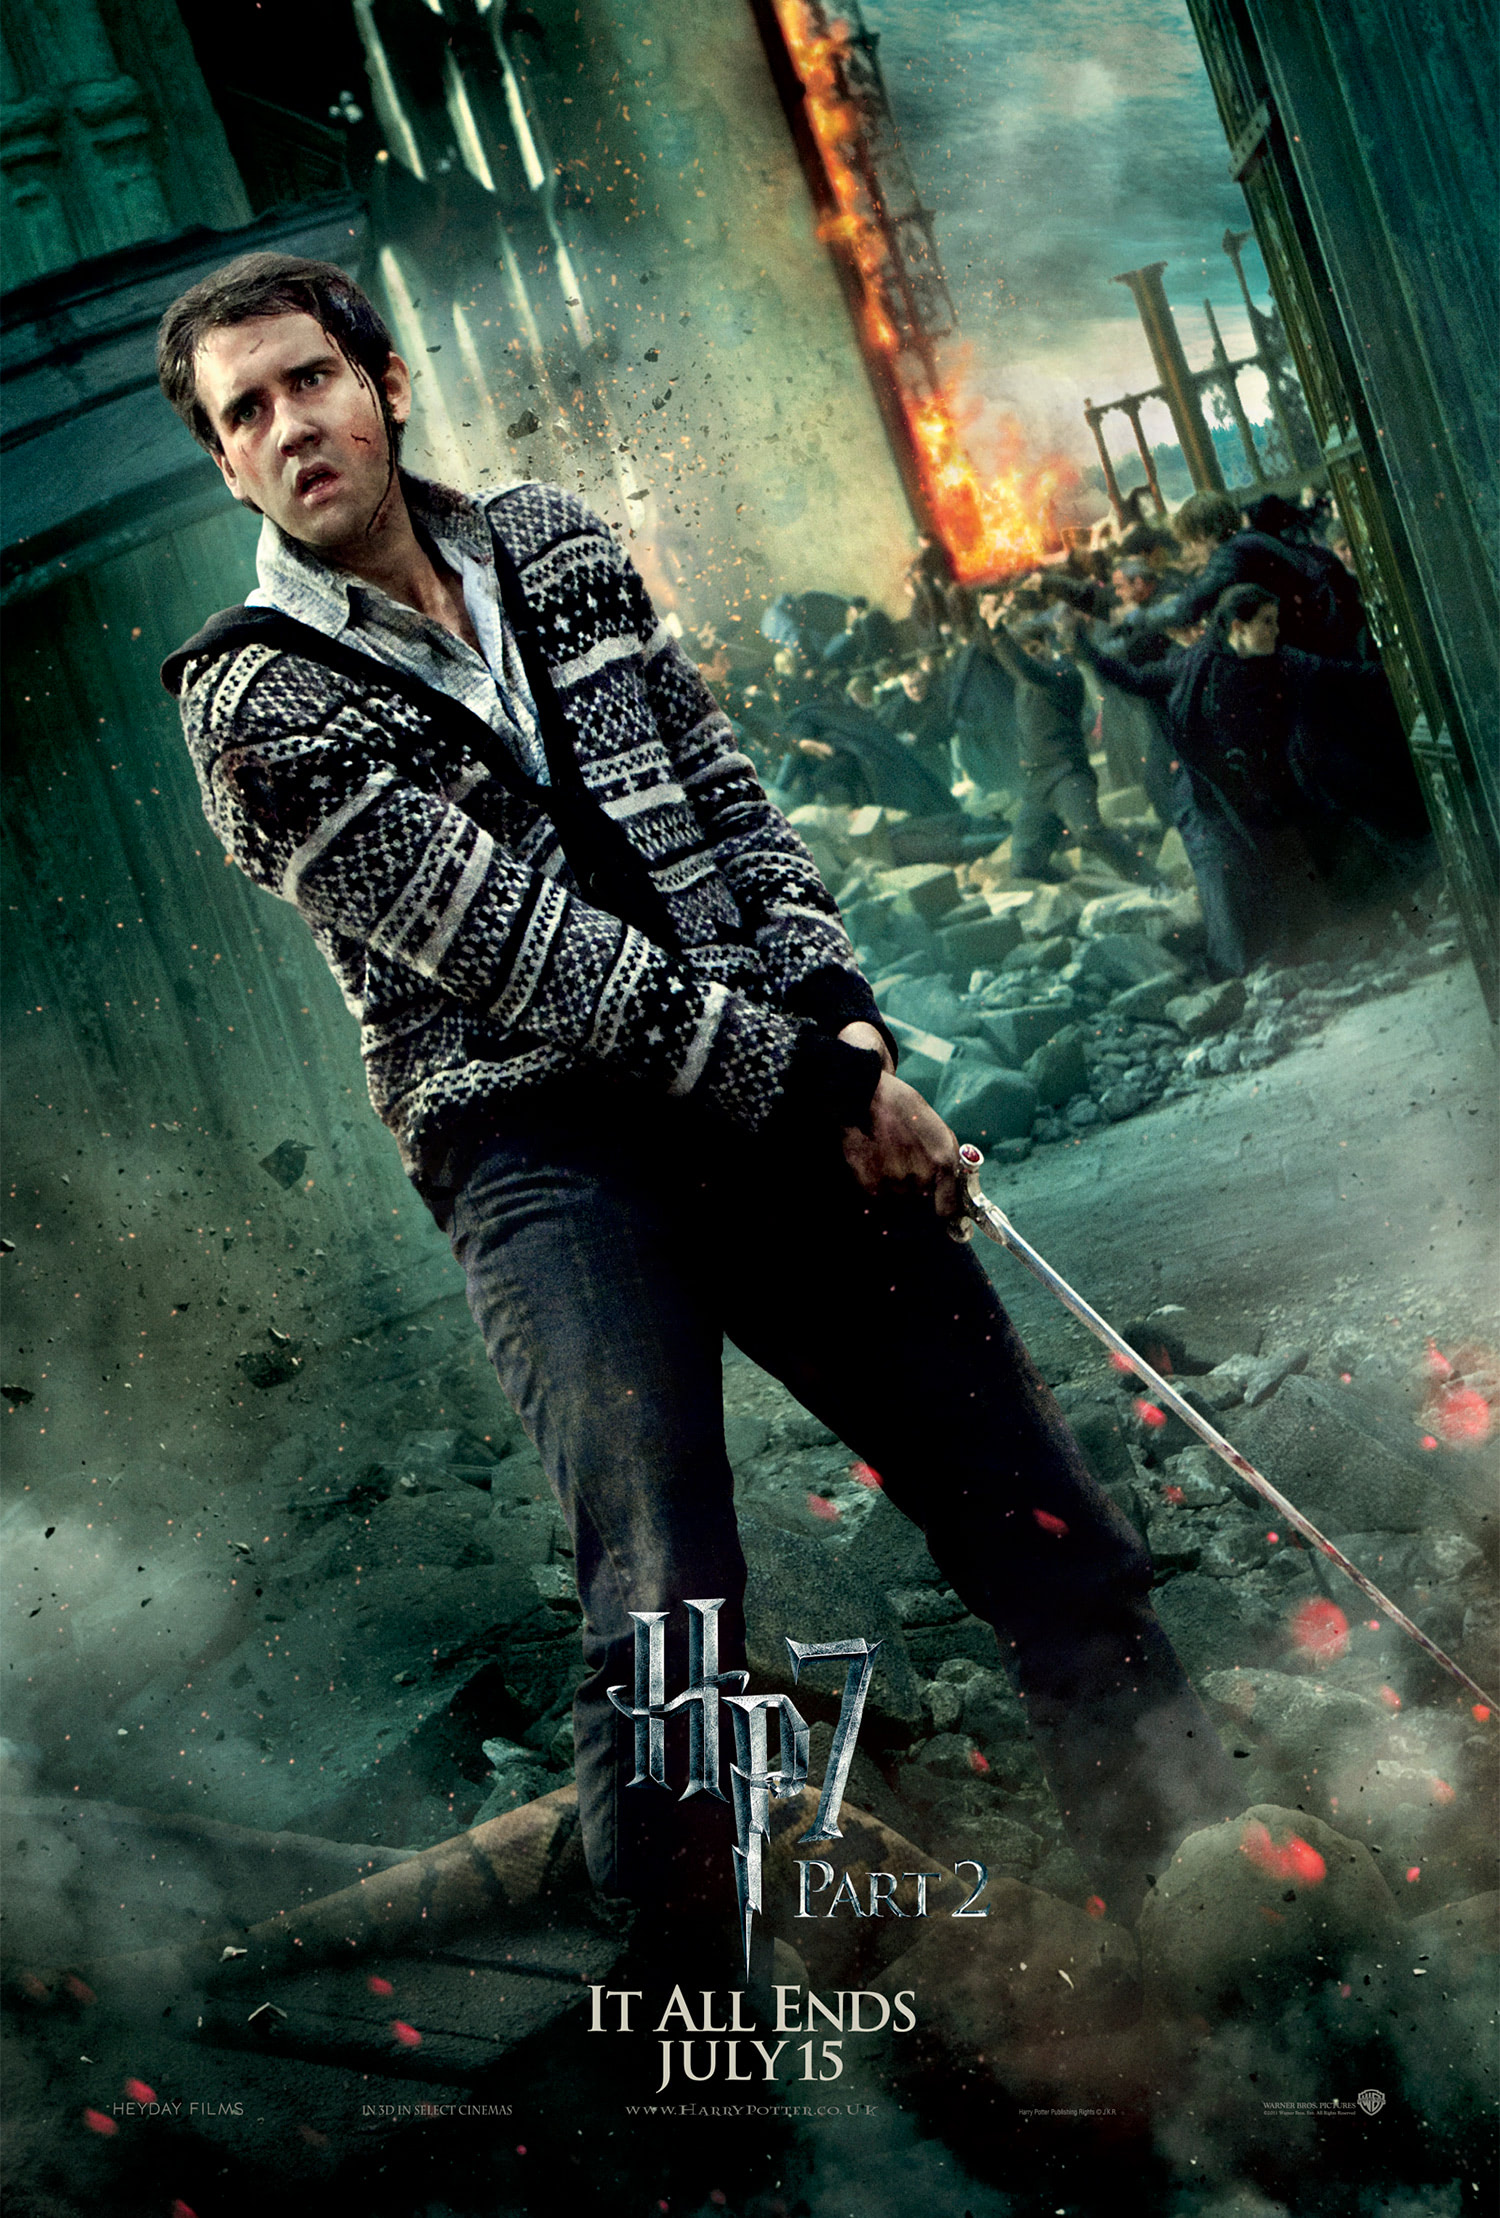 'Deathly Hallows: Part 2' Neville poster